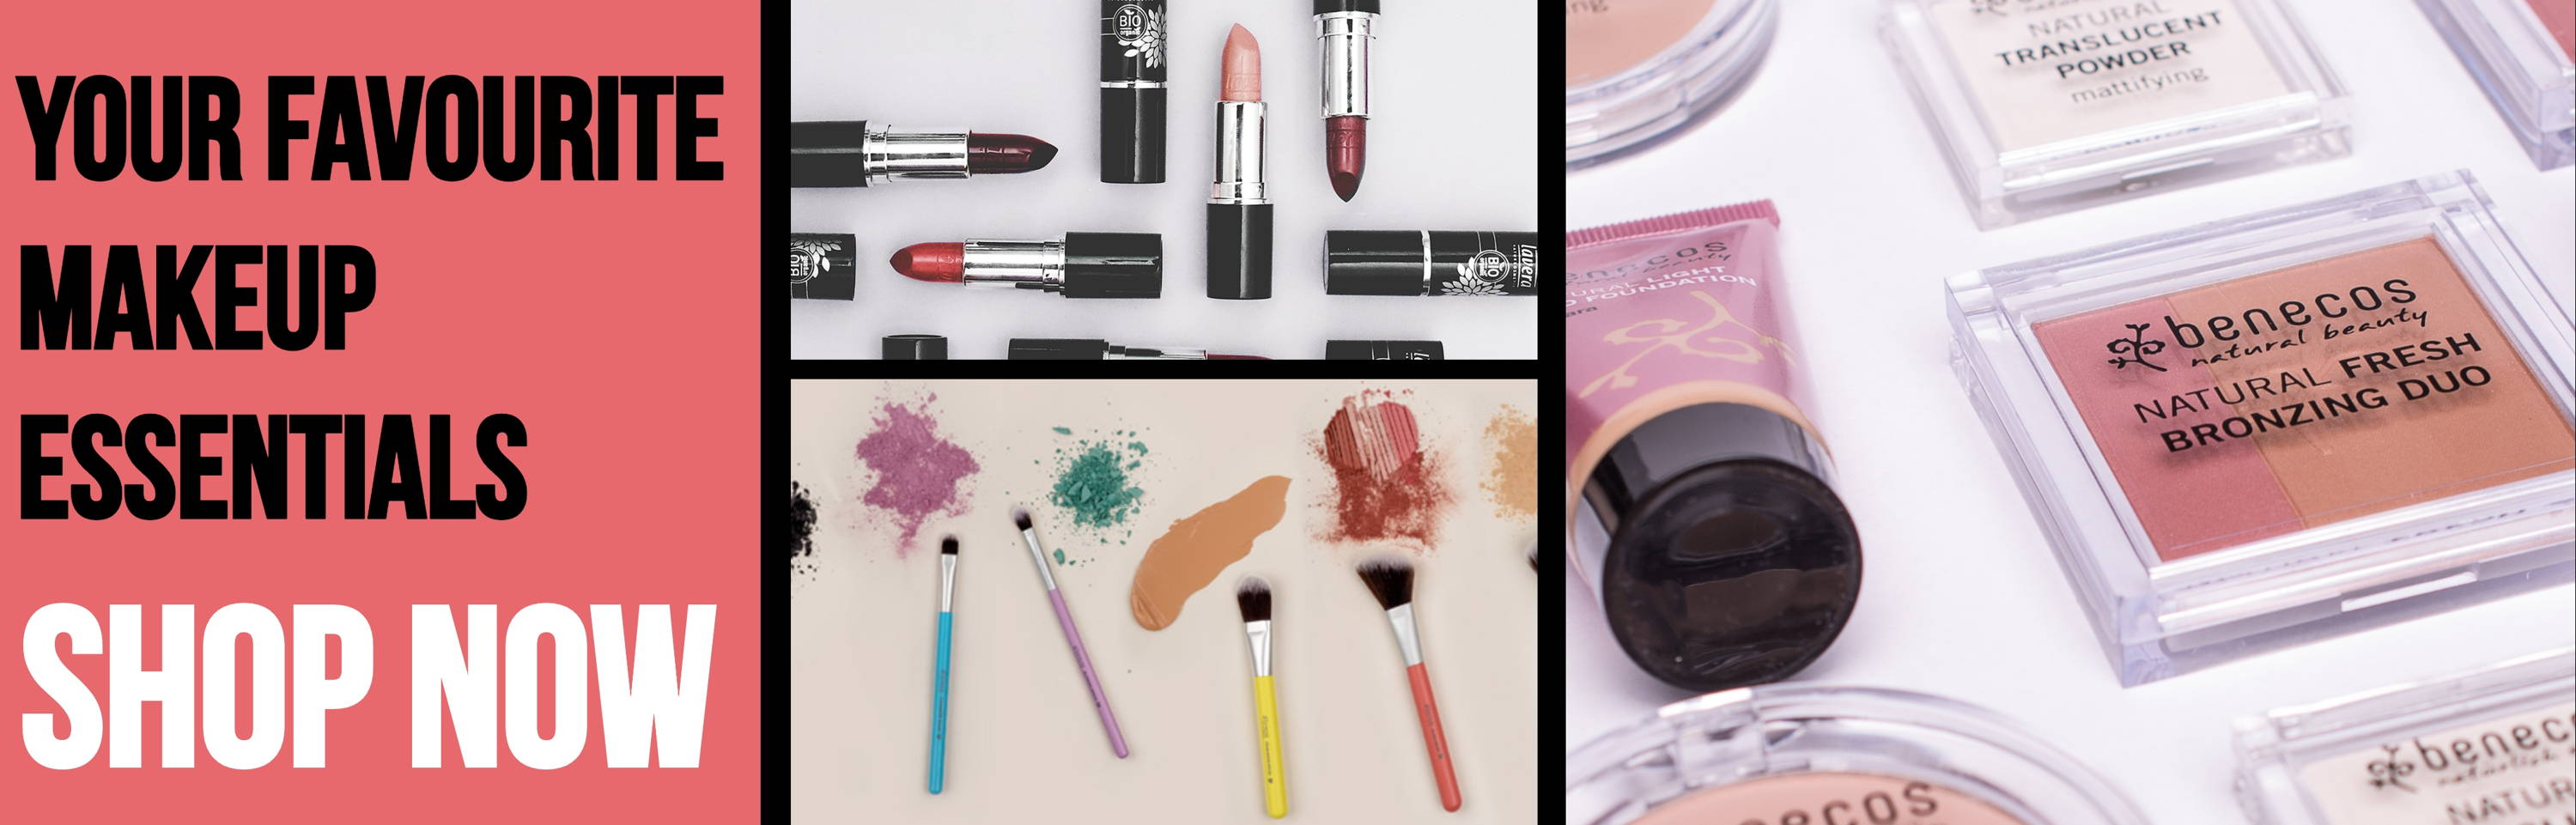 Explore our natural make up from lavera and benecos for your cruelty free beauty products!